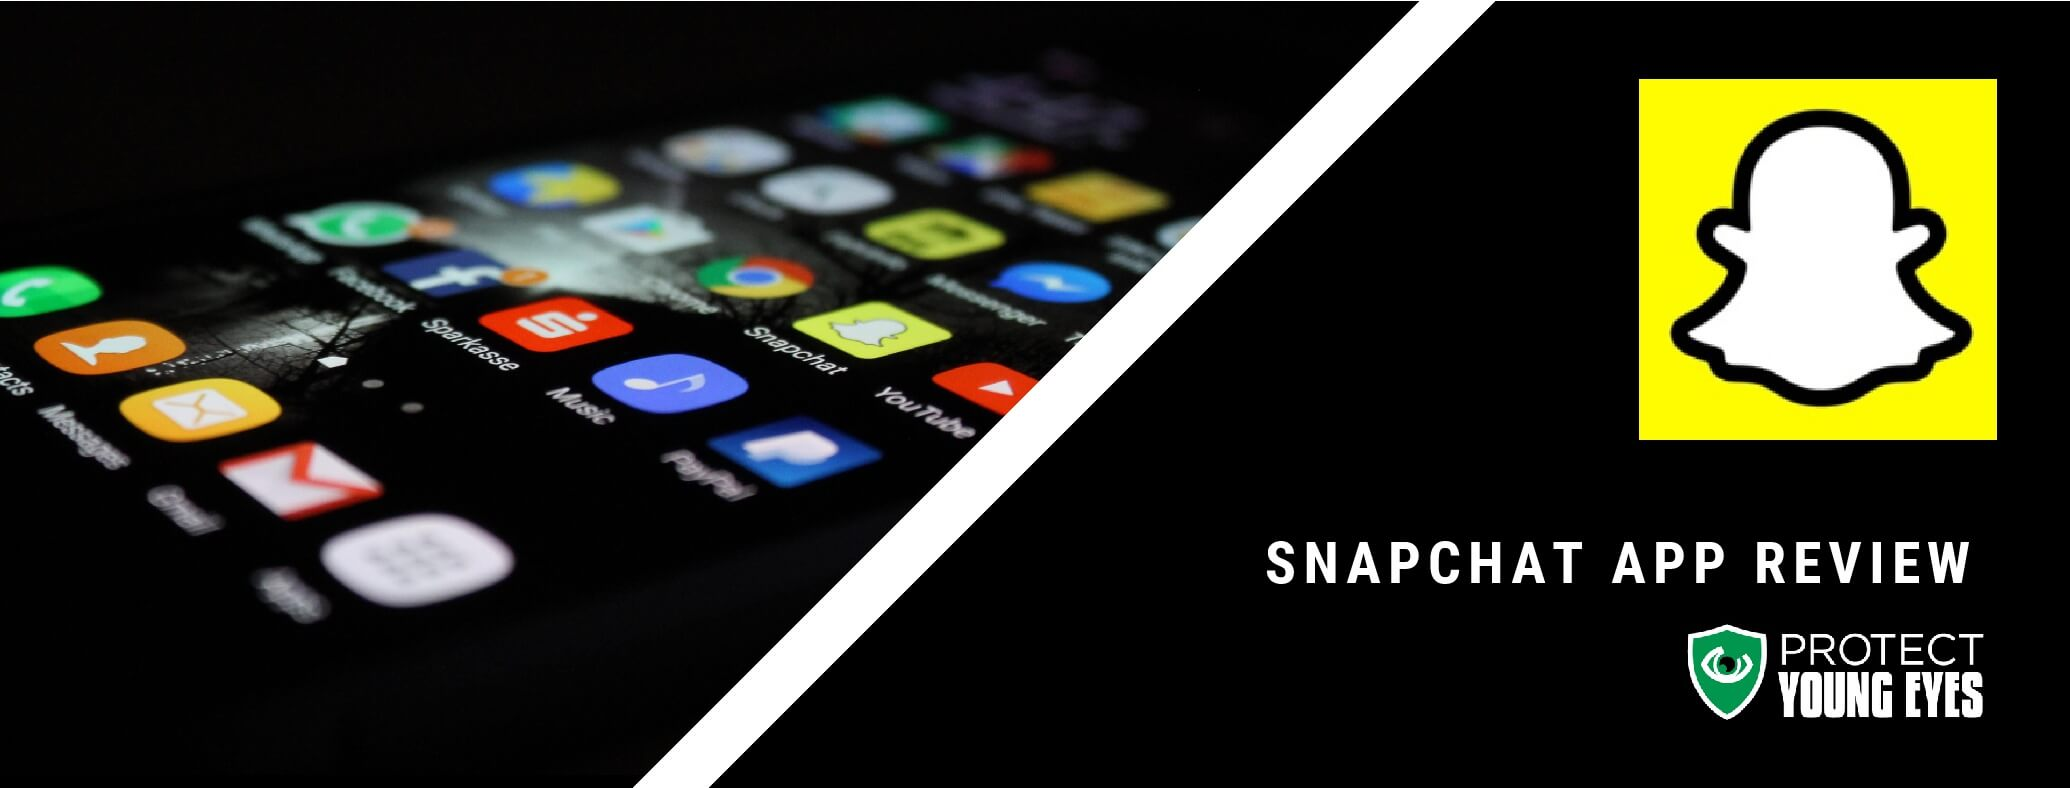 Snapchat: App Information for Parents from Protect Young Eyes